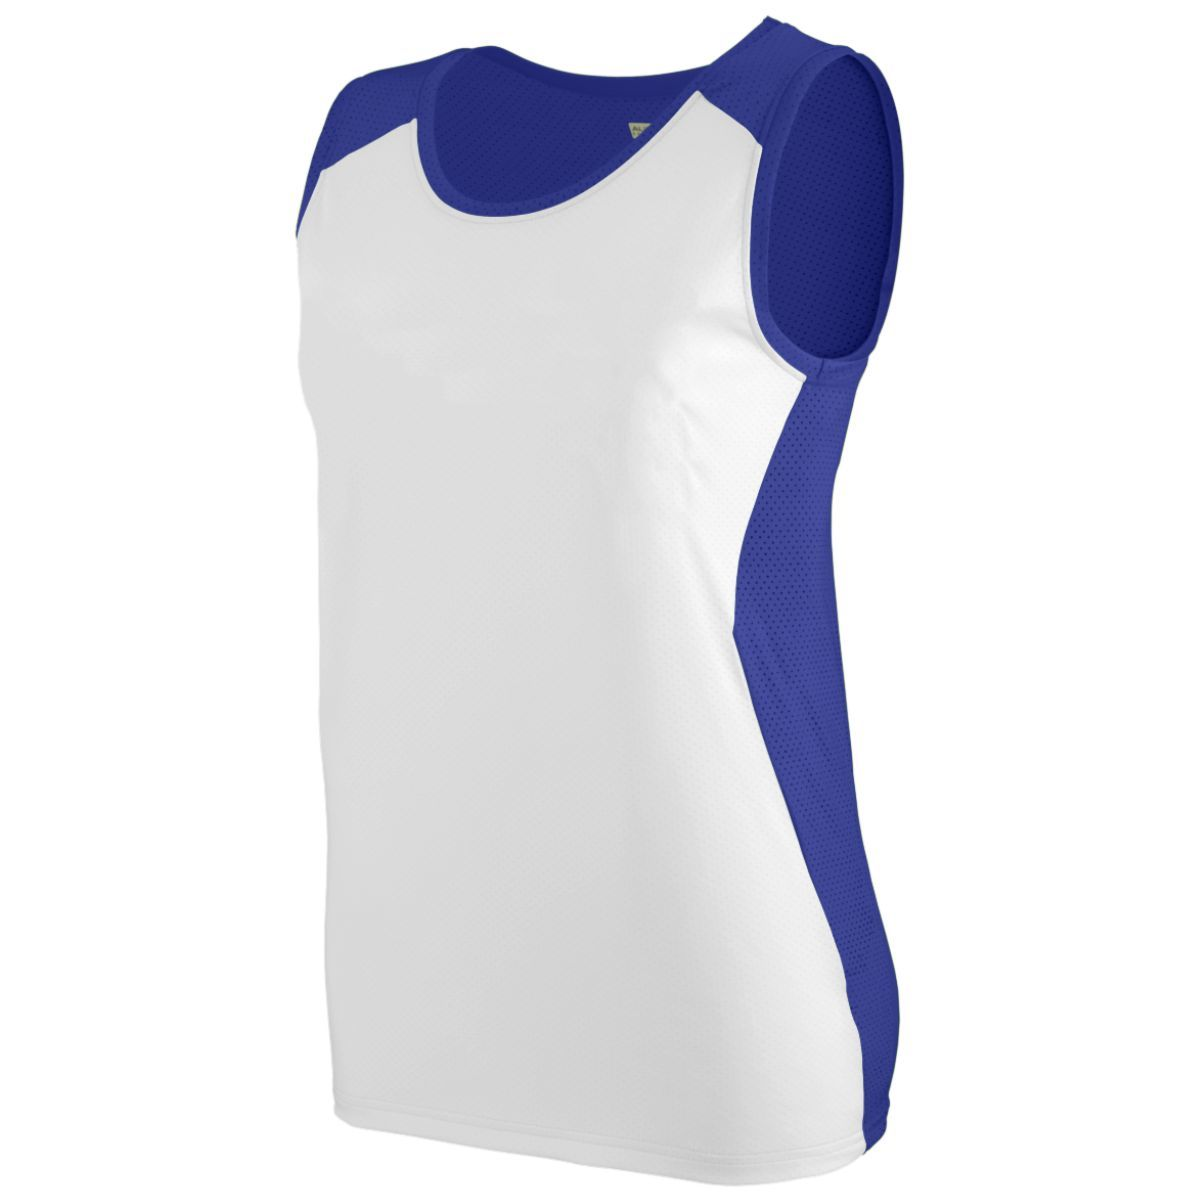 Ladies Alize Jersey - PURPLE/WHITE